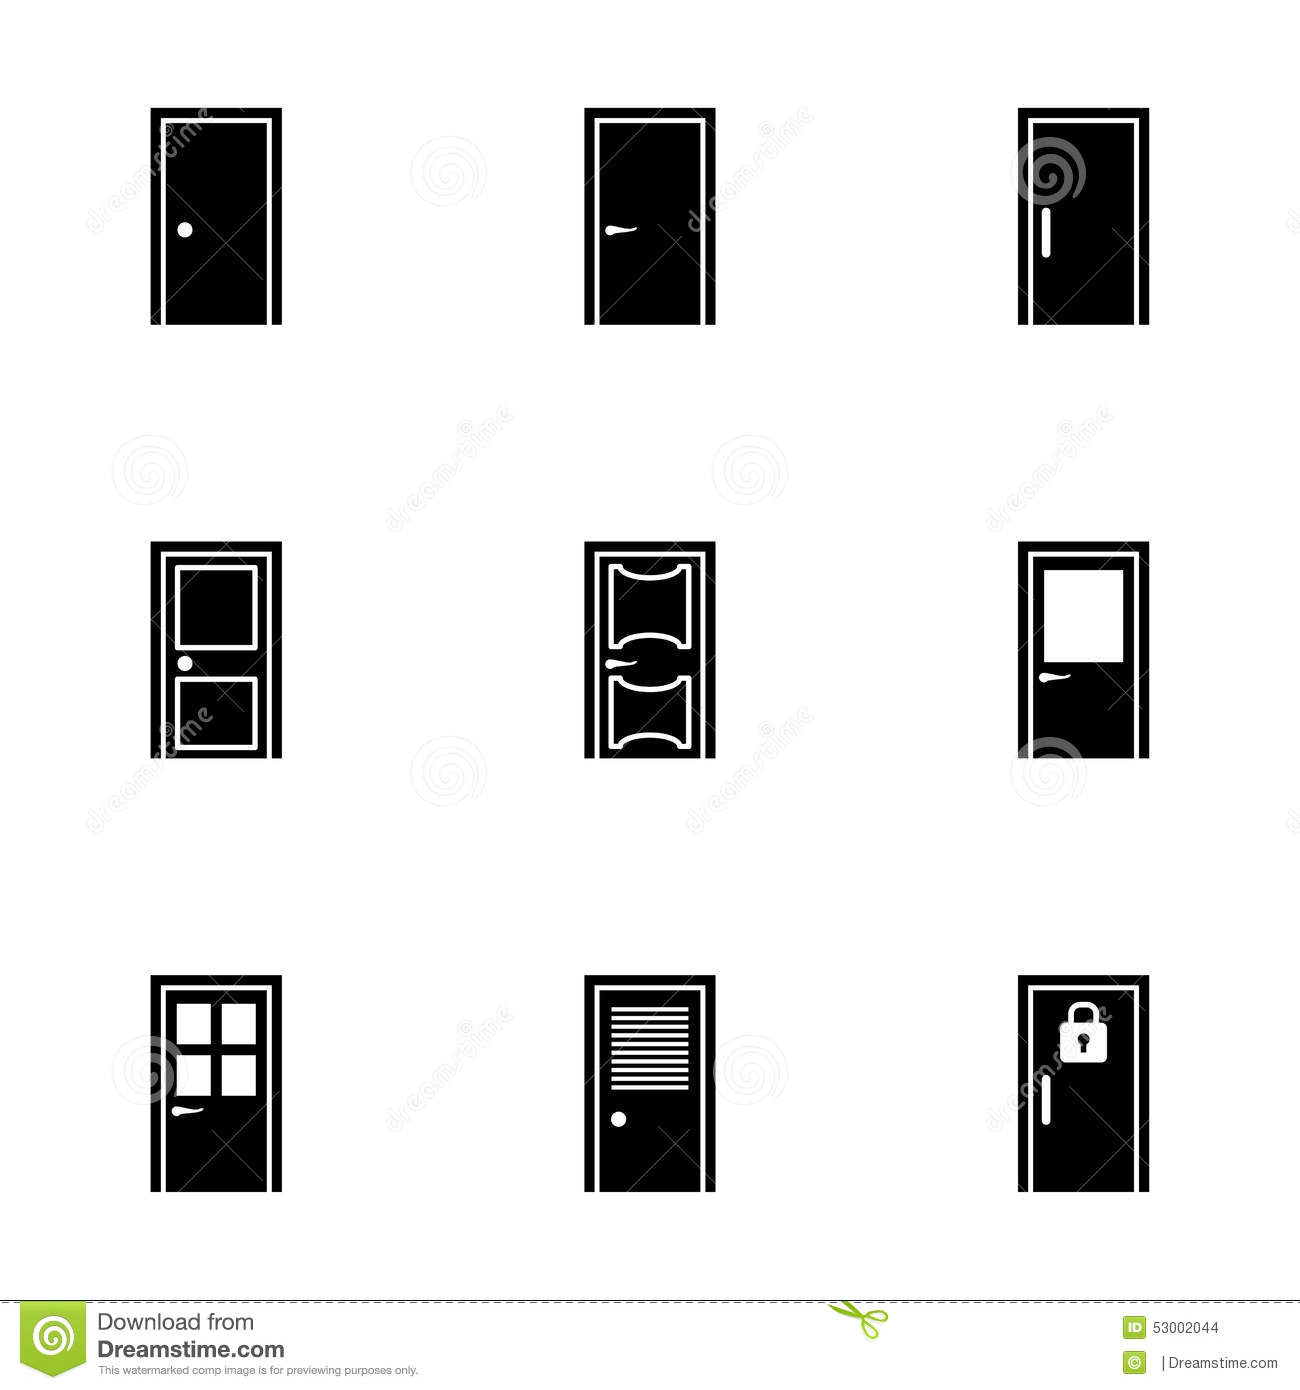 Vector door icon set stock vector. Image of frame, close